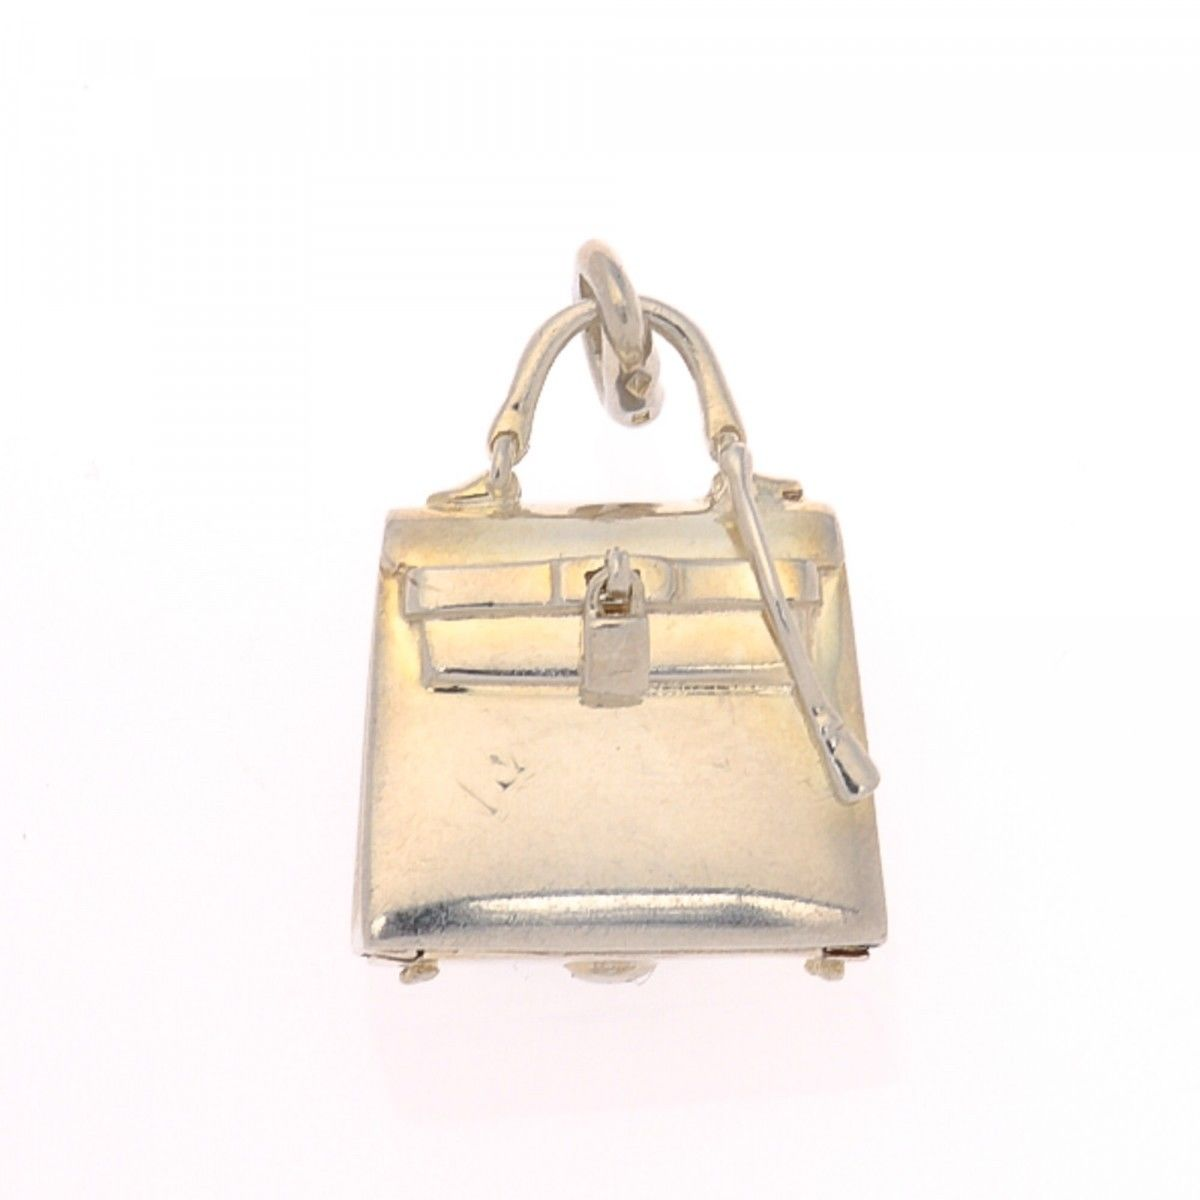 Herms kelly pill box pendant top 925 silver lxrandco pre owned herms kelly pill box pendant top 925 silver lxrandco pre owned luxury vintage aloadofball Choice Image